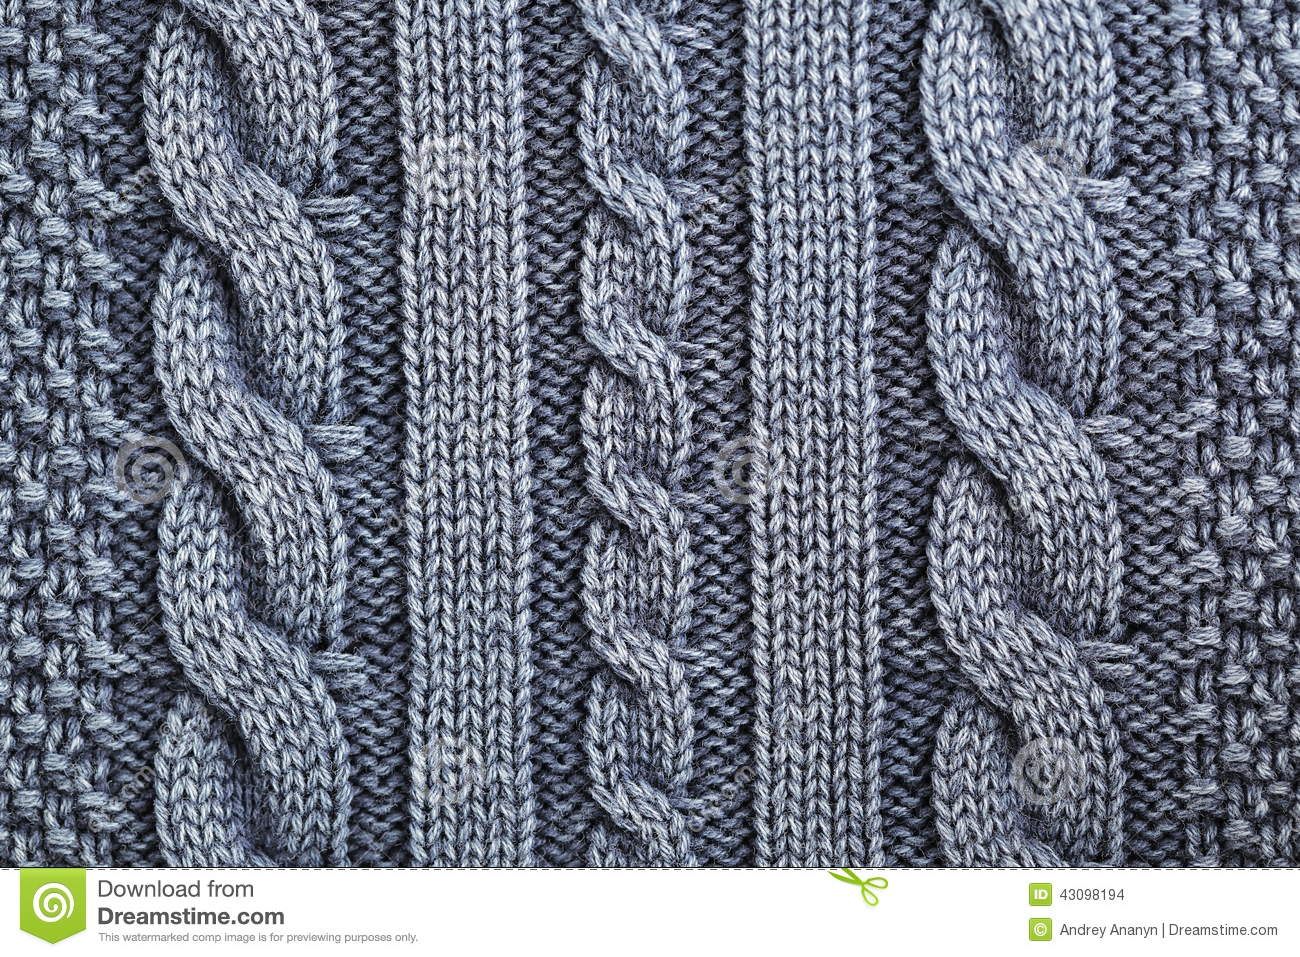 Weird Knitting Patterns : Unusual Abstract Knitted Pattern Background Texture Stock Photo - Image: 4309...